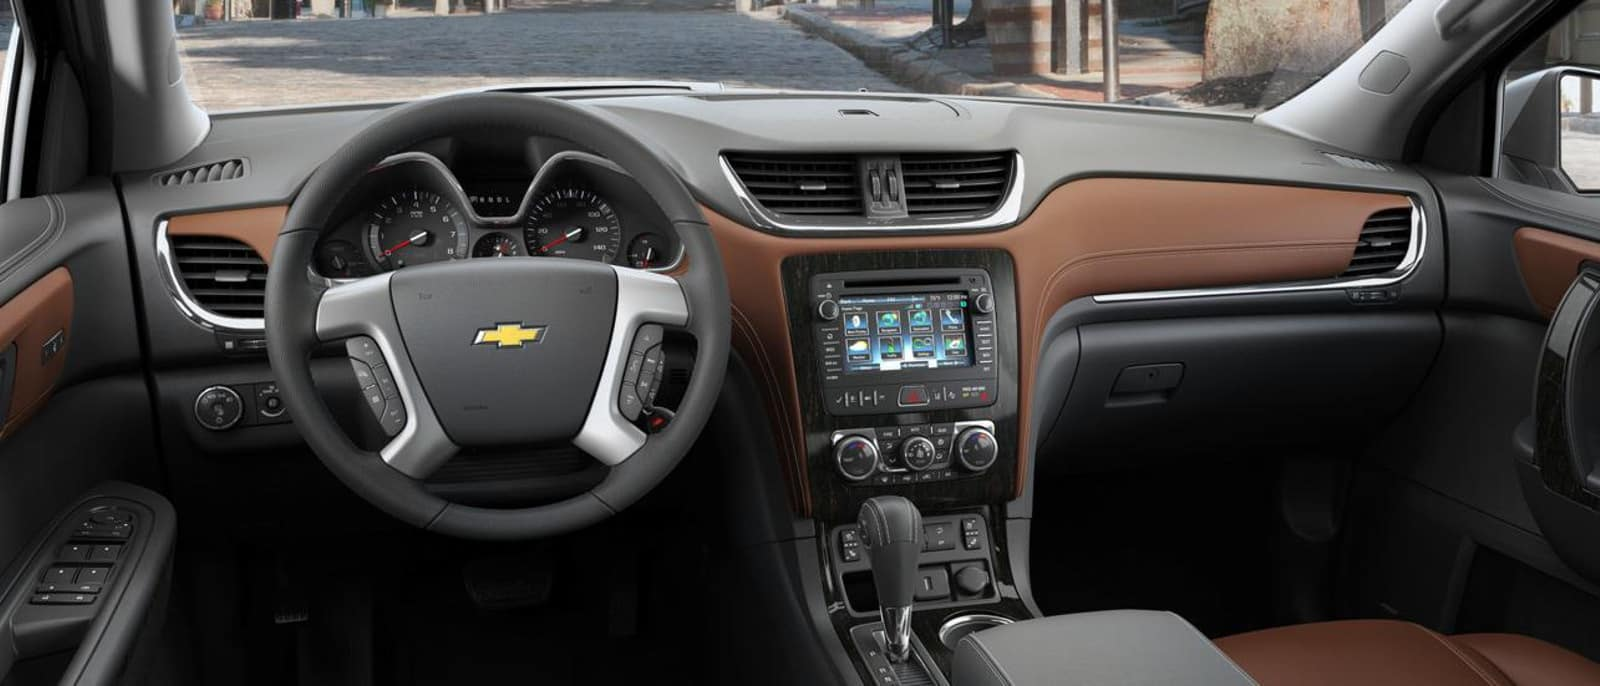 2016 Chevrolet Traverse interior